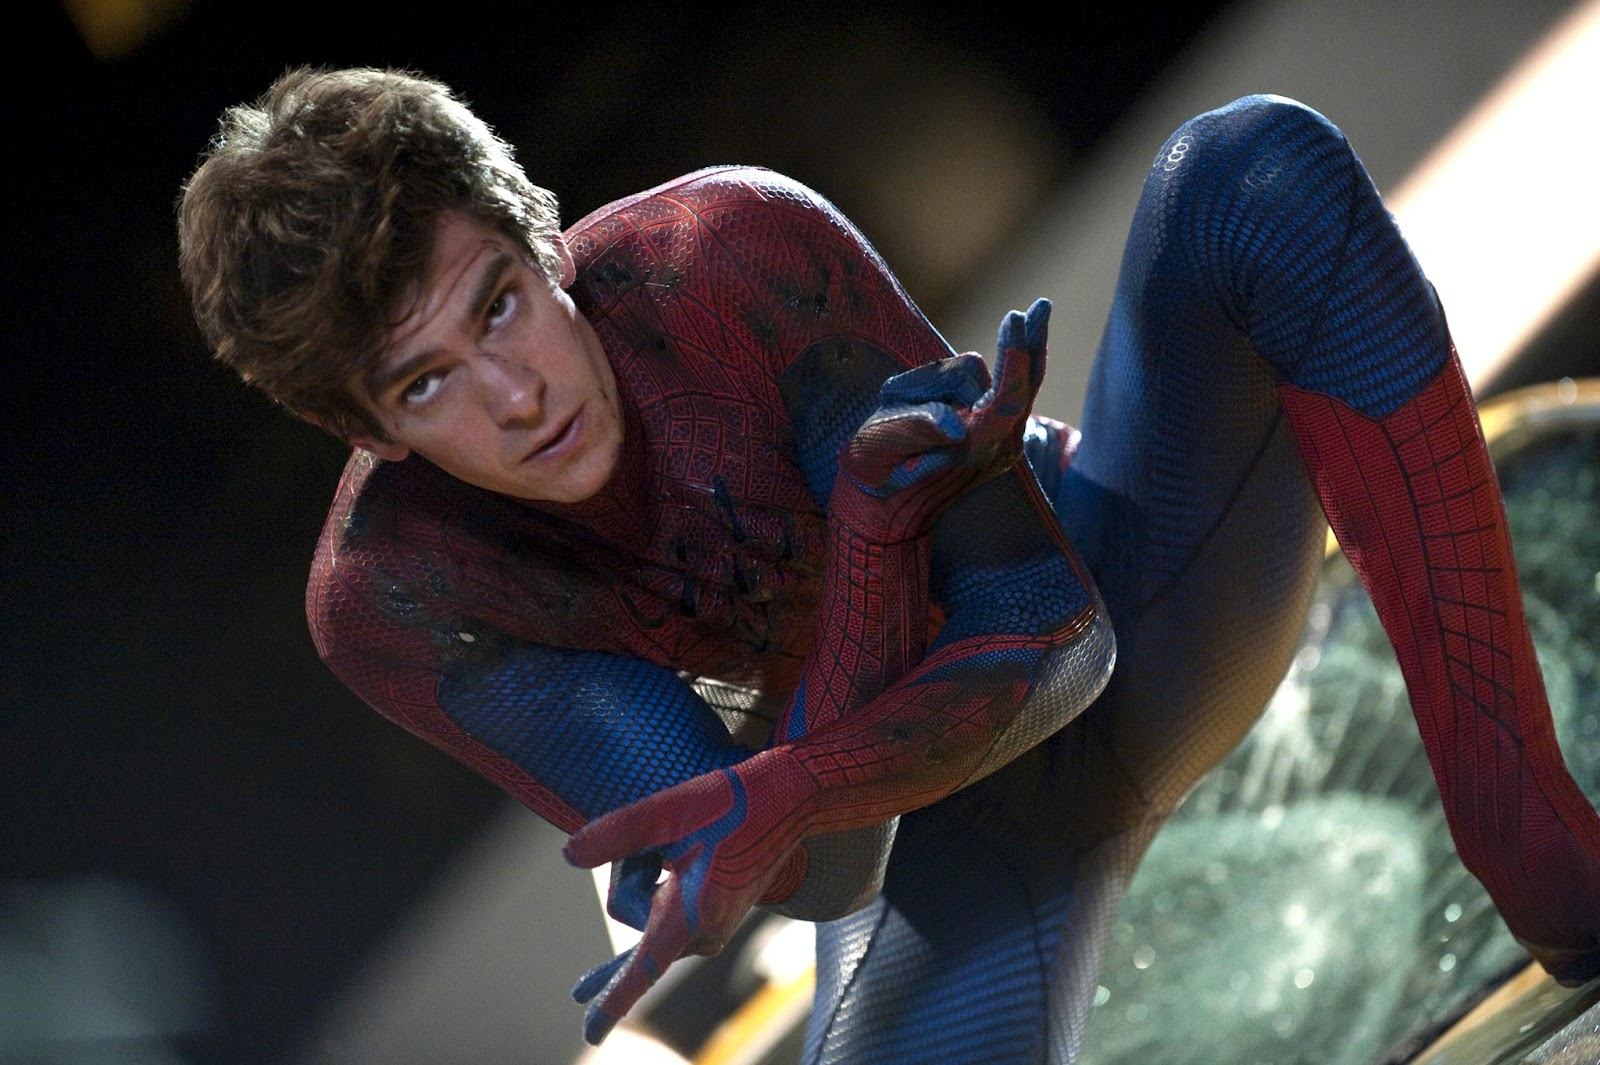 The Amazing Spider Man 3 (2016) Photo Gallery! Full HD